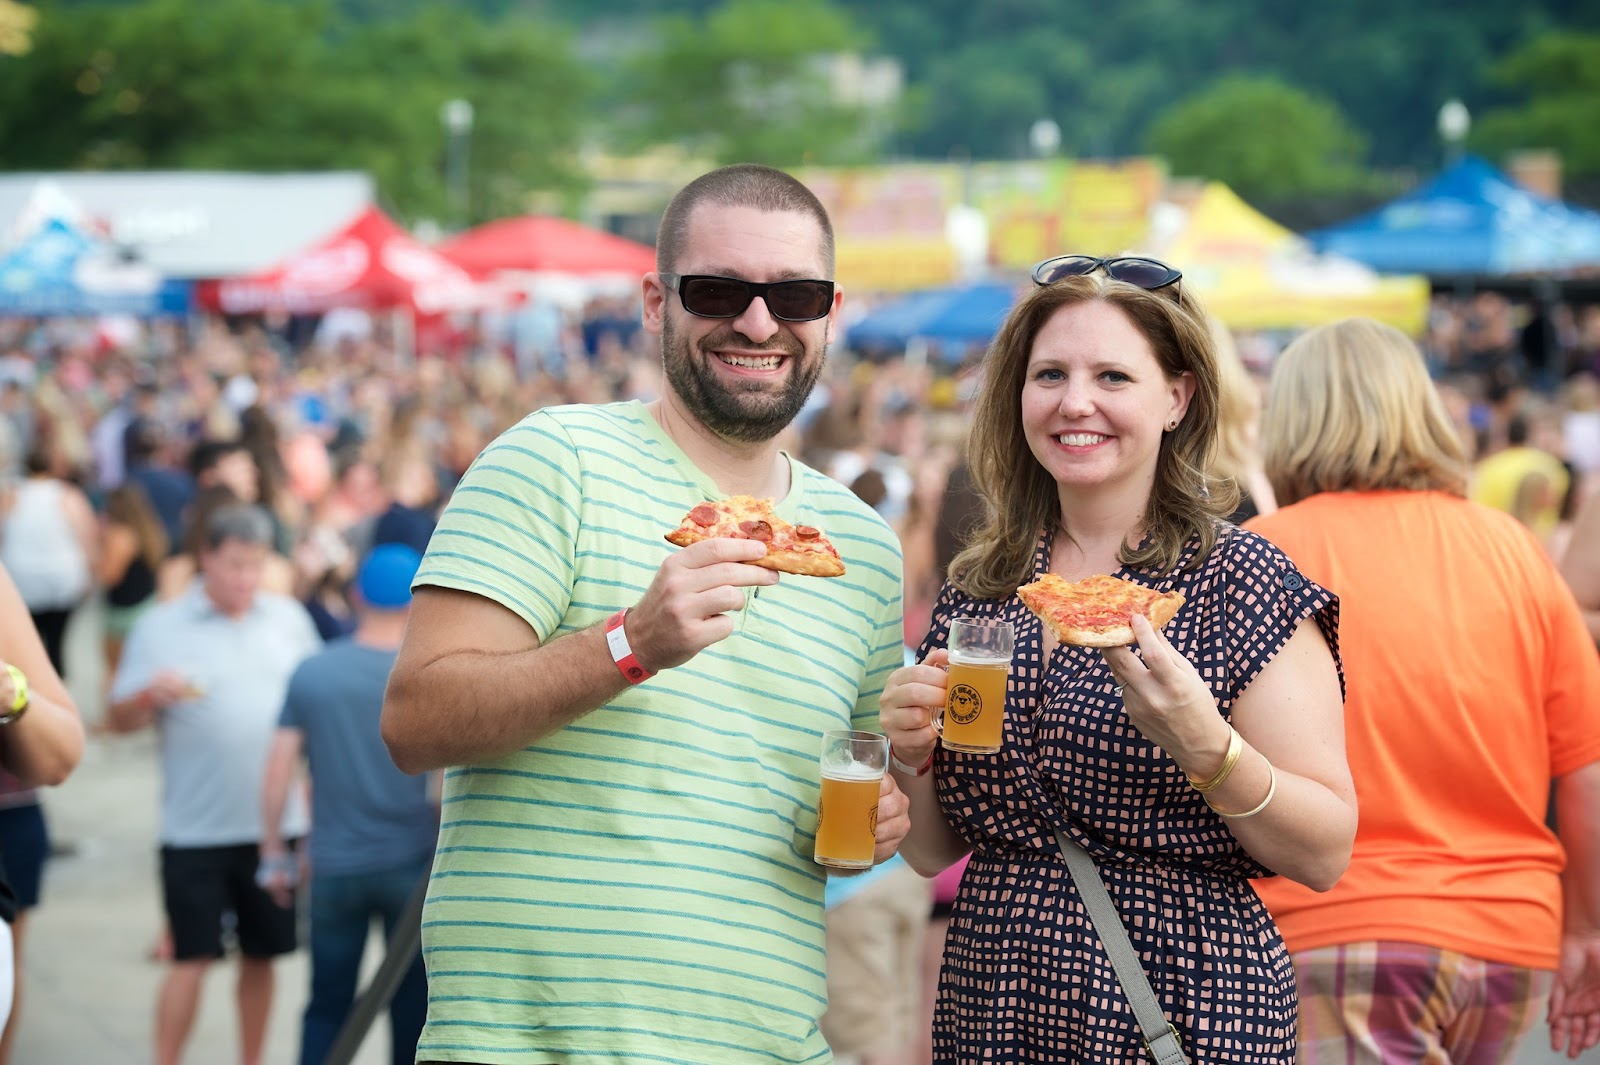 eating pizza and drinking beer at a festival